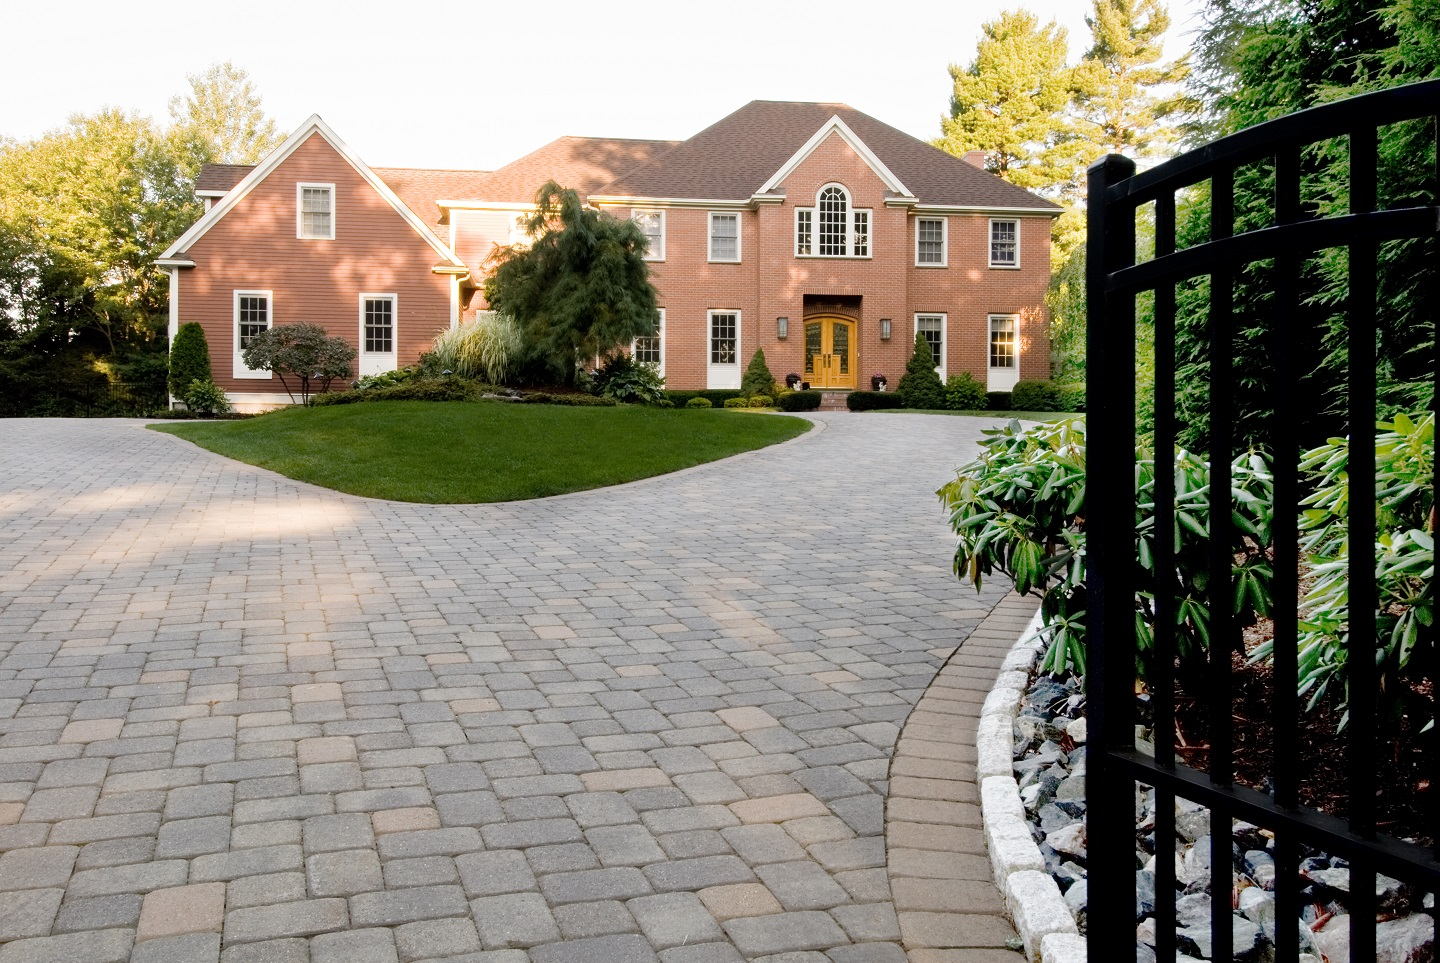 High-quality driveway pavers in Wellesley MA